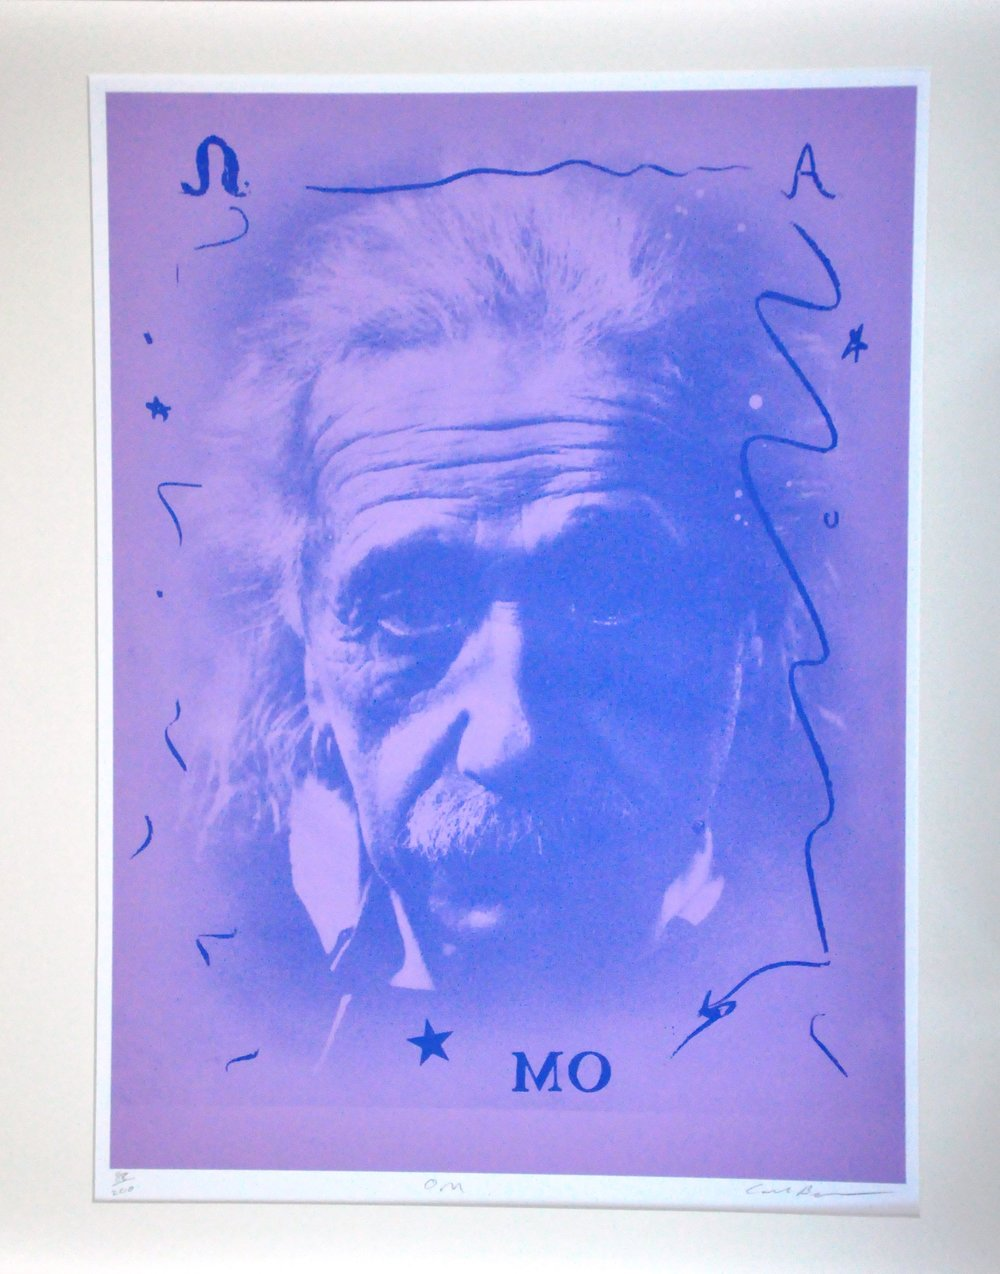 "Einstein M.O.,  2000, Carl Beam, serigraph on paper, edition 88/200, 30"" x 22"", 2006.05.05, gift of the Milton Winberg Foundation"